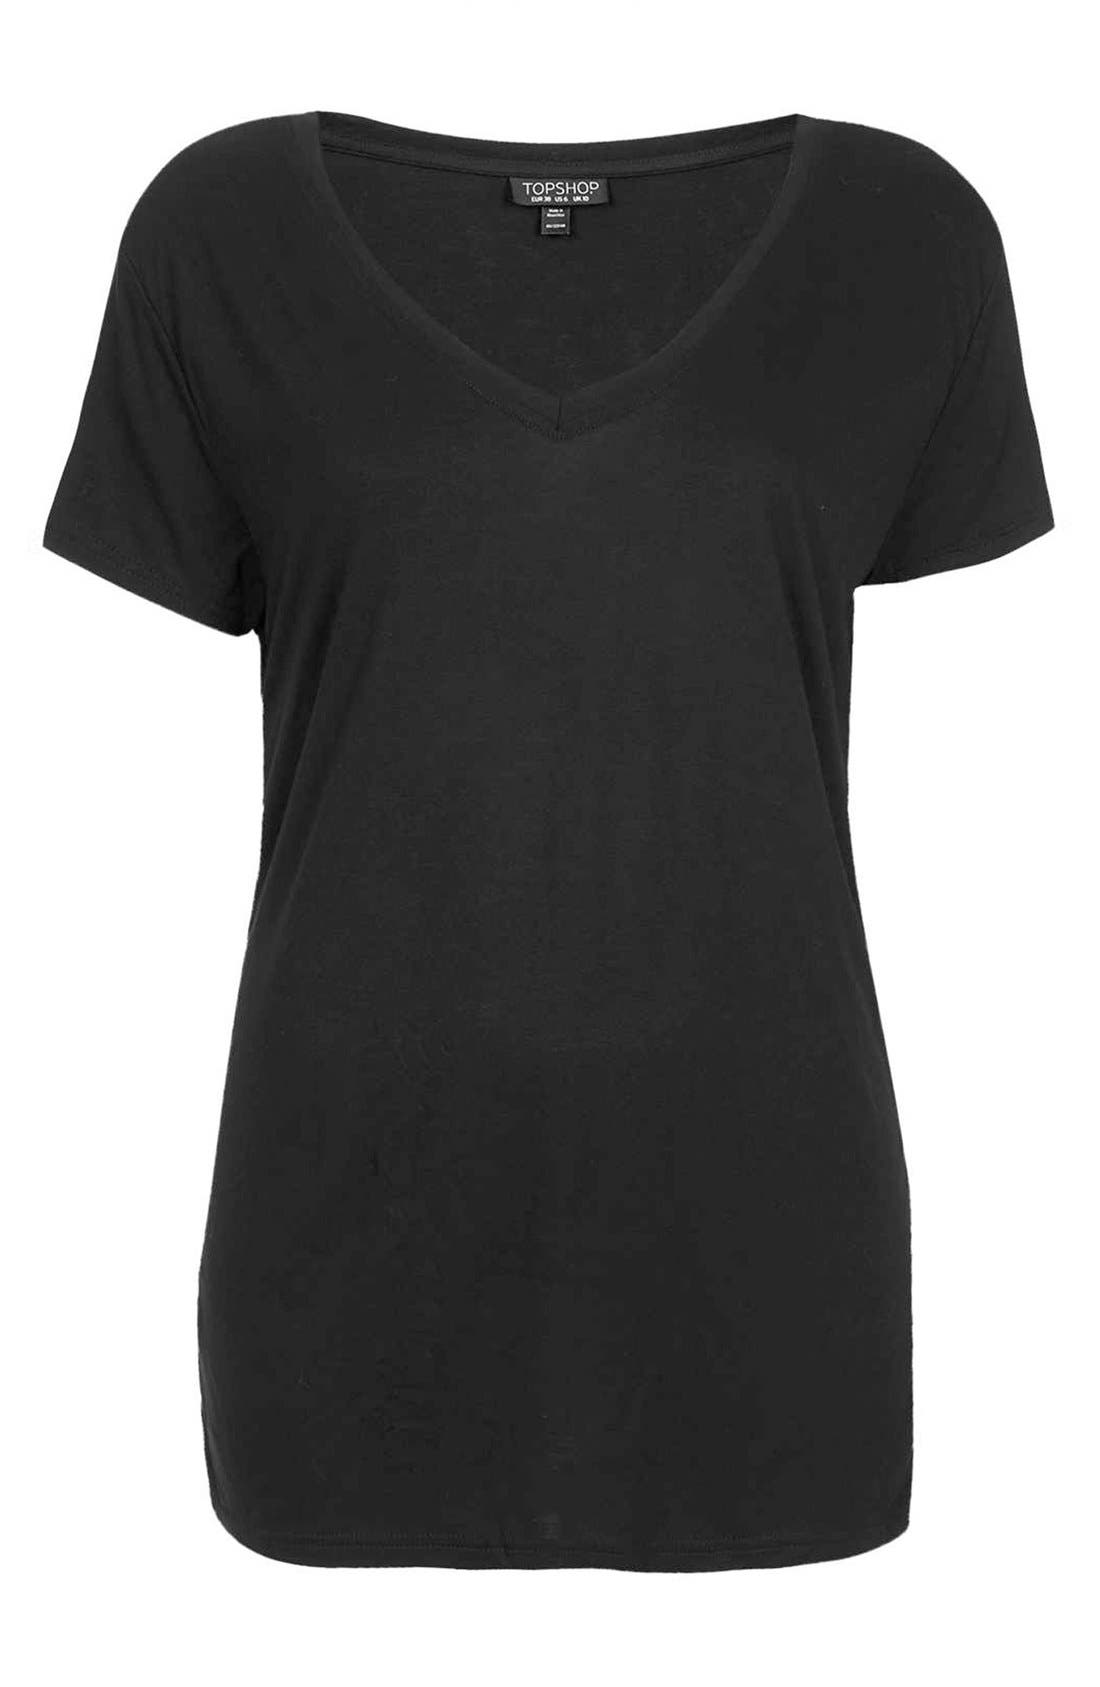 TOPSHOP, V-Neck Tee, Alternate thumbnail 4, color, 001